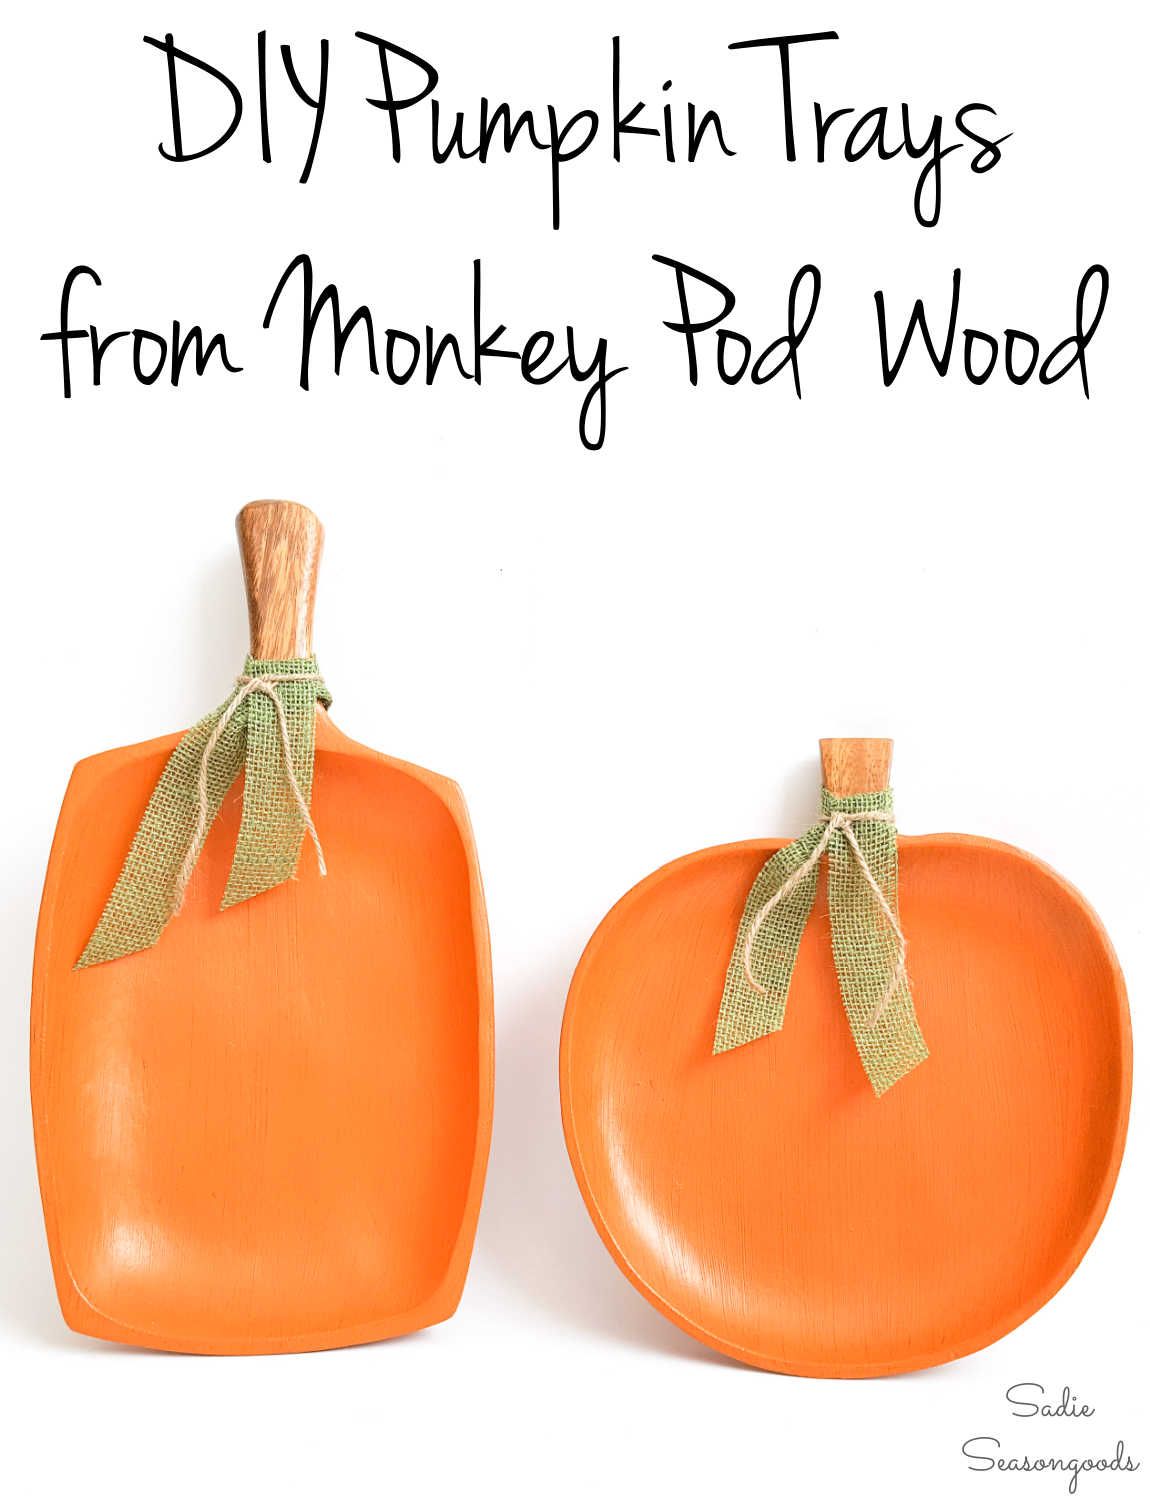 wooden pumpkins to paint for fall decor